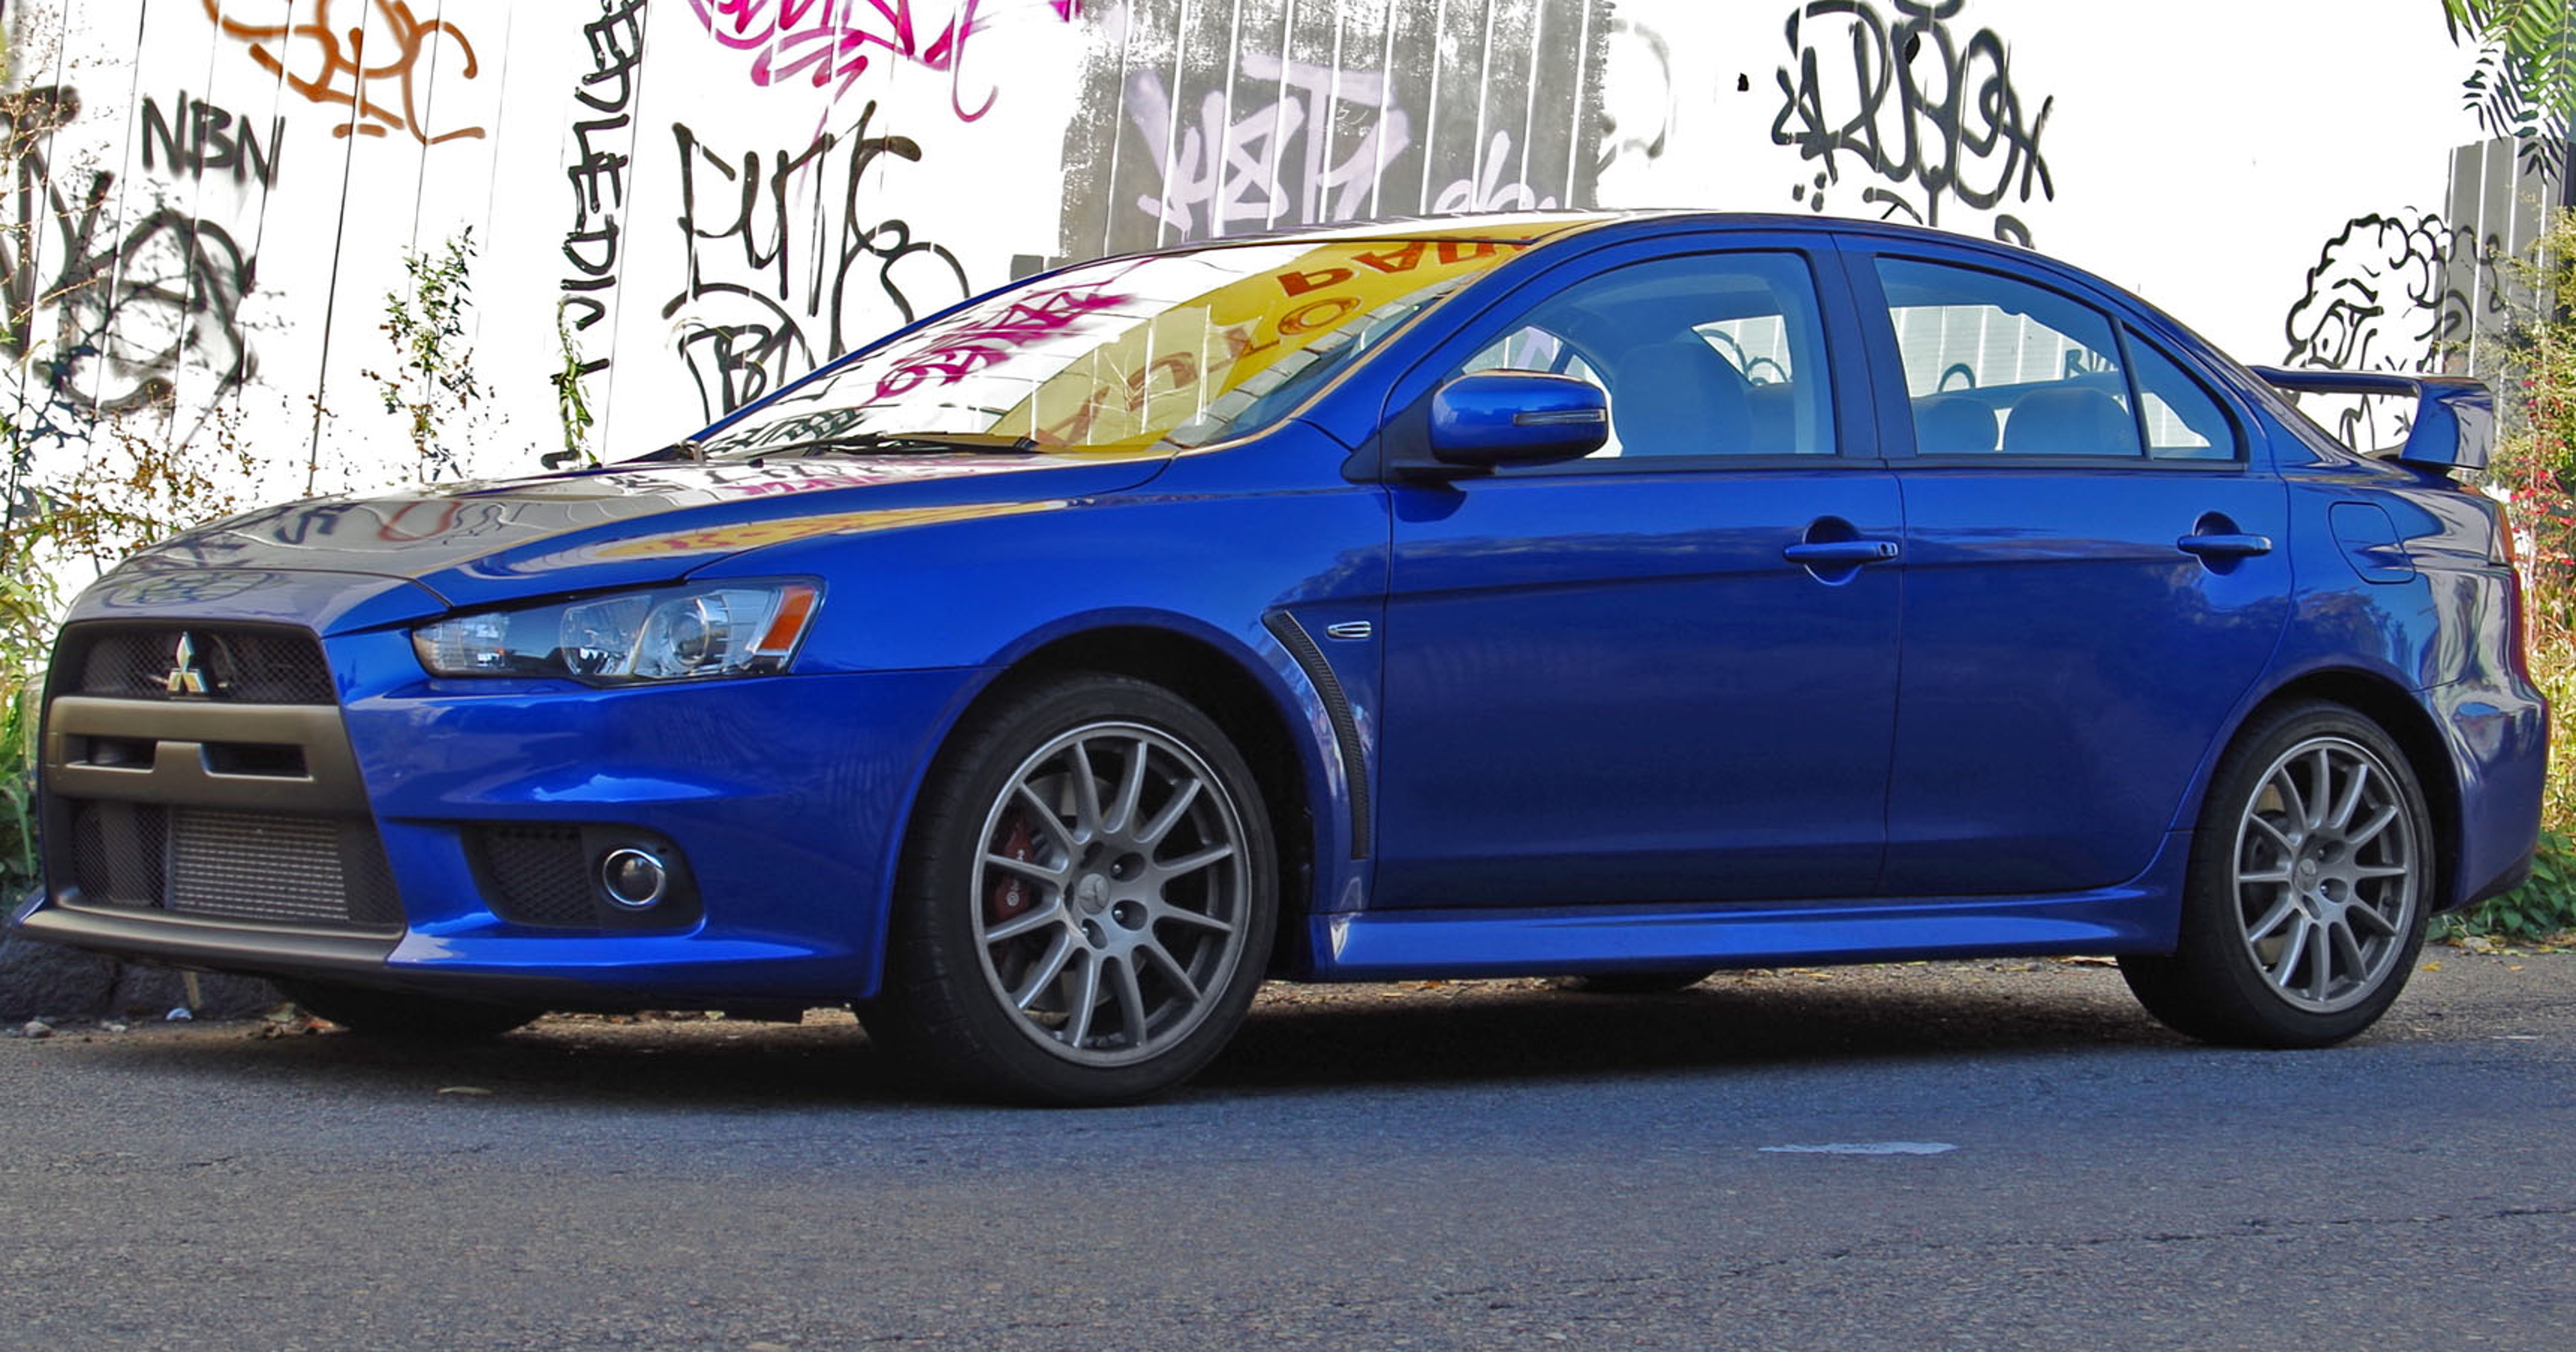 Review Last Chance To Catch Mitsubishi Lancer Evo 2015 Eclipse Efficiency And Velocity Best Auto Insurance